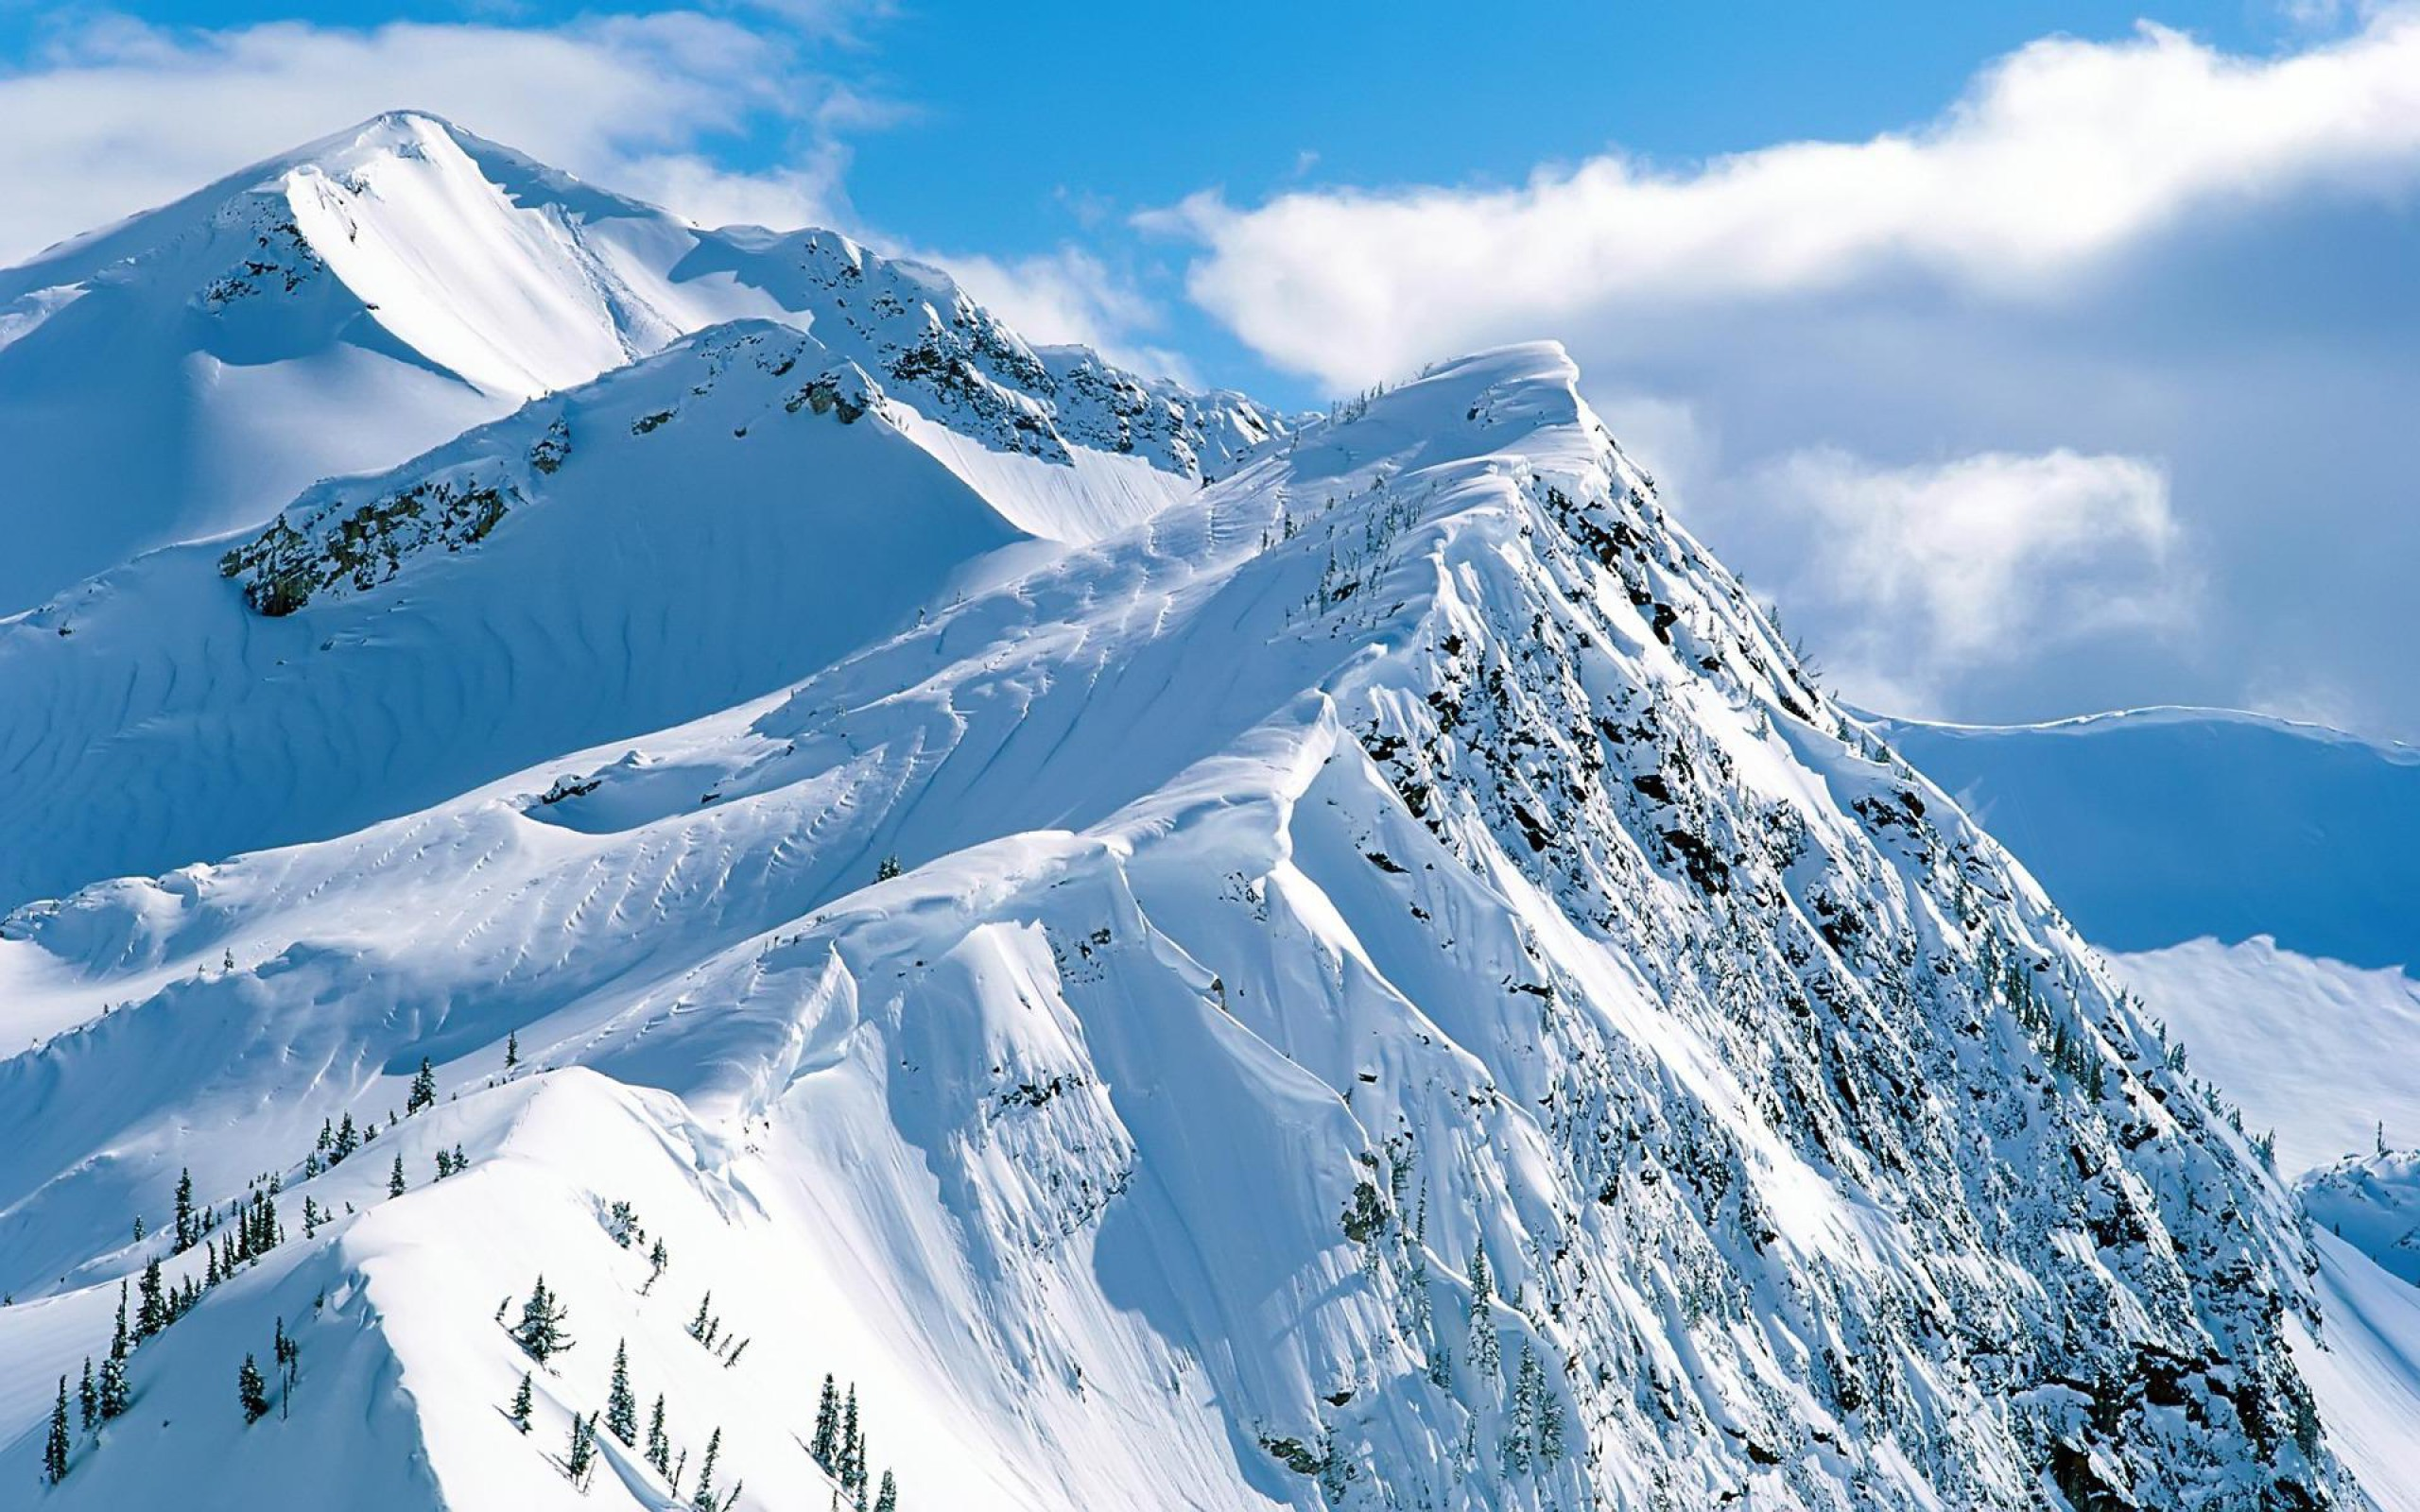 Hd wallpaper mountains - Mountains Wallpaper Mountain Wallpapers Hd